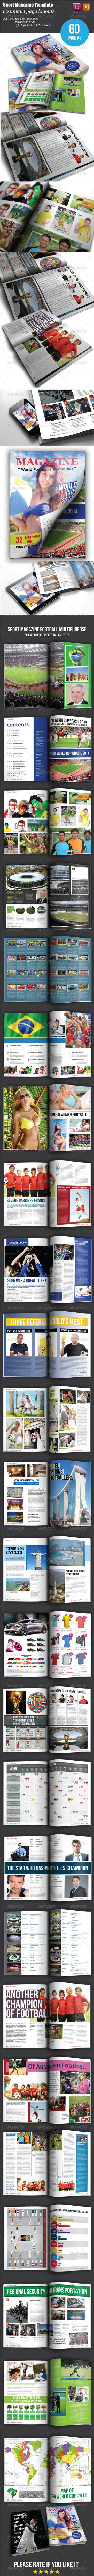 A5 Football Magazine — InDesign INDD #template #paint • Available here → https://graphicriver.net/item/a5-football-magazine/5529982?ref=pxcr